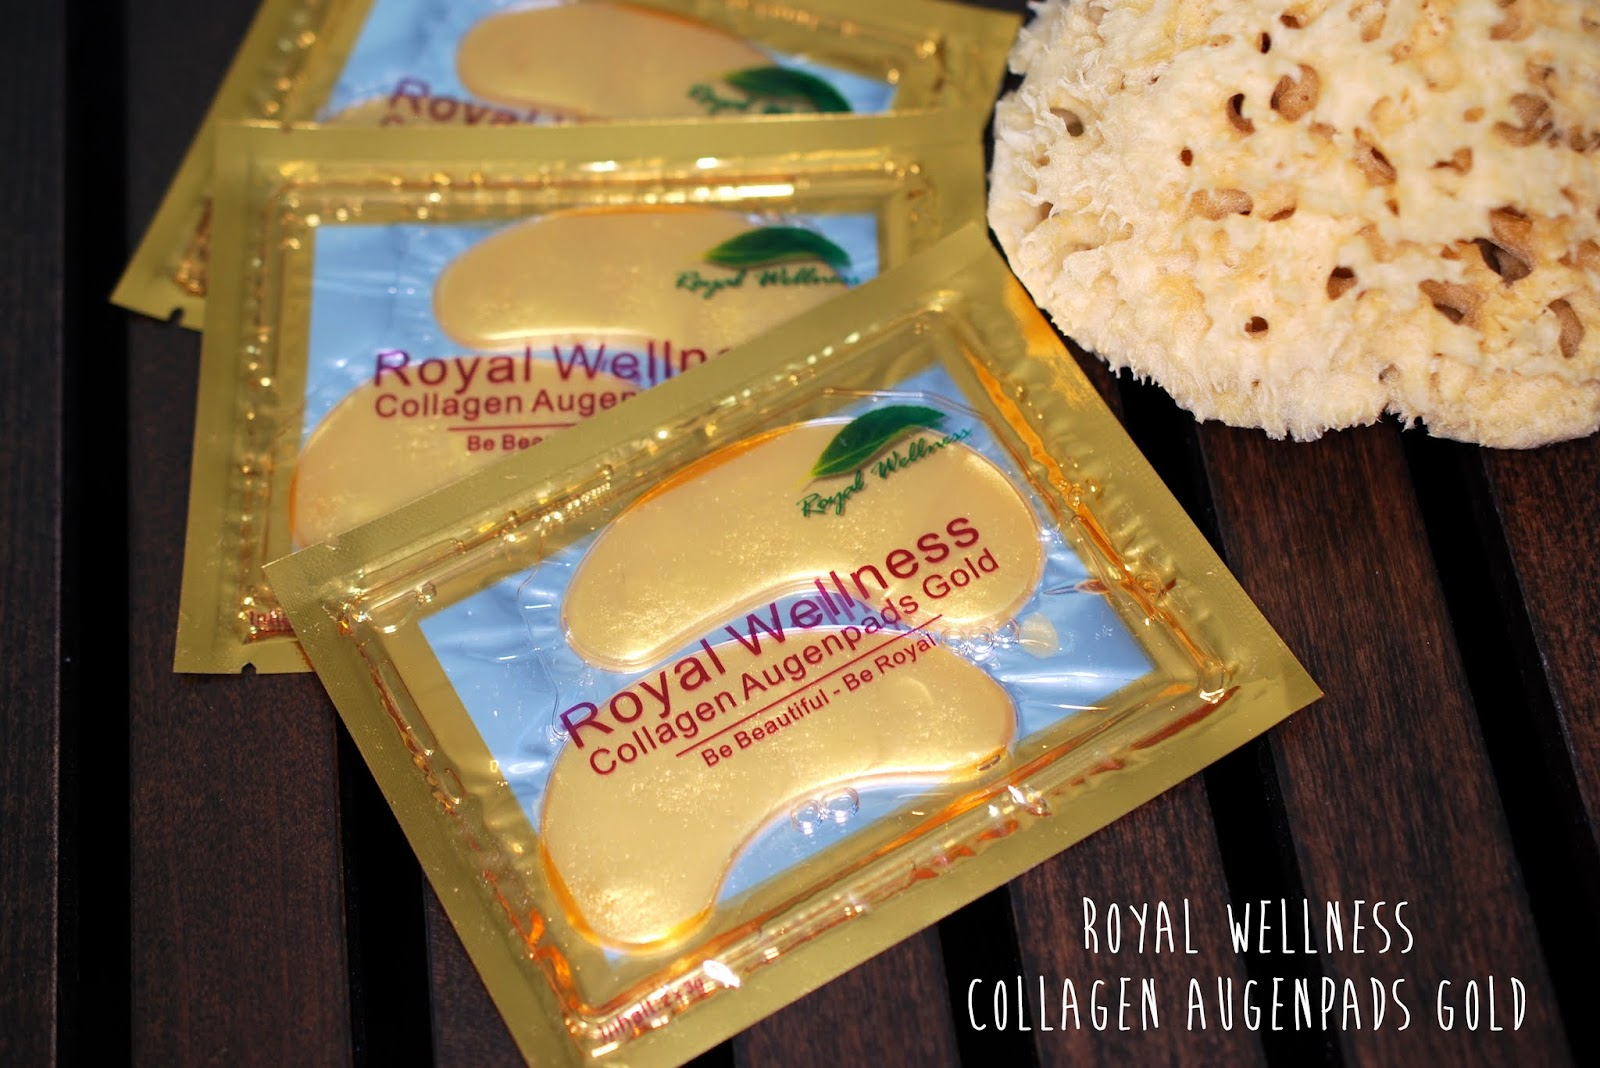 Royal Wellness Collagen Augenpads Gold